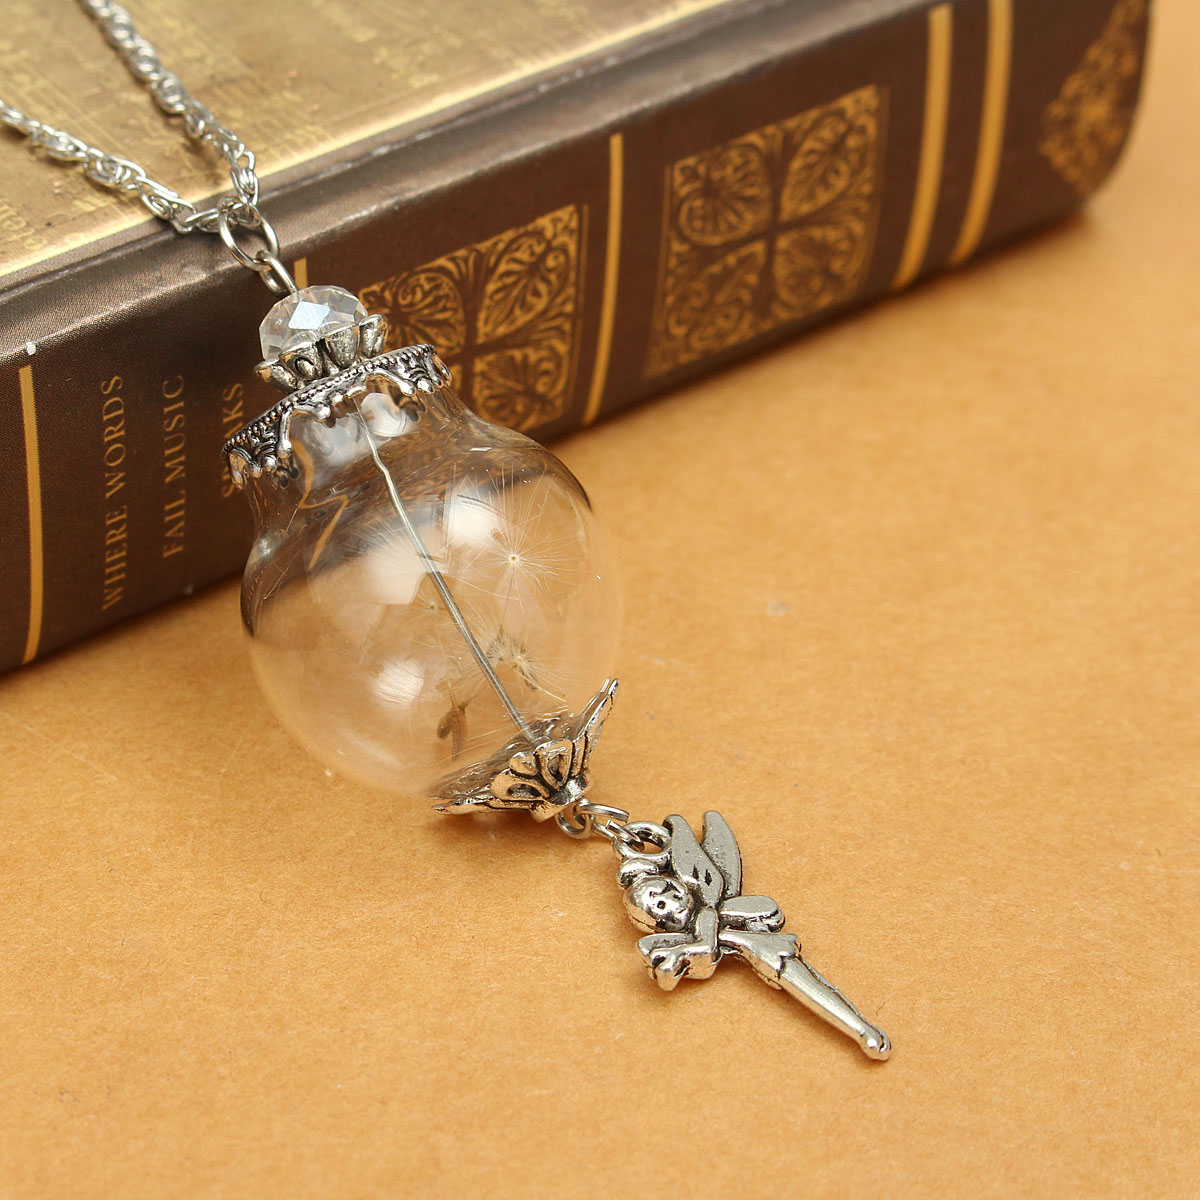 Wish Bottle Dandelion Glass Anchor Pendant Chain Sweater Necklace Jewelry